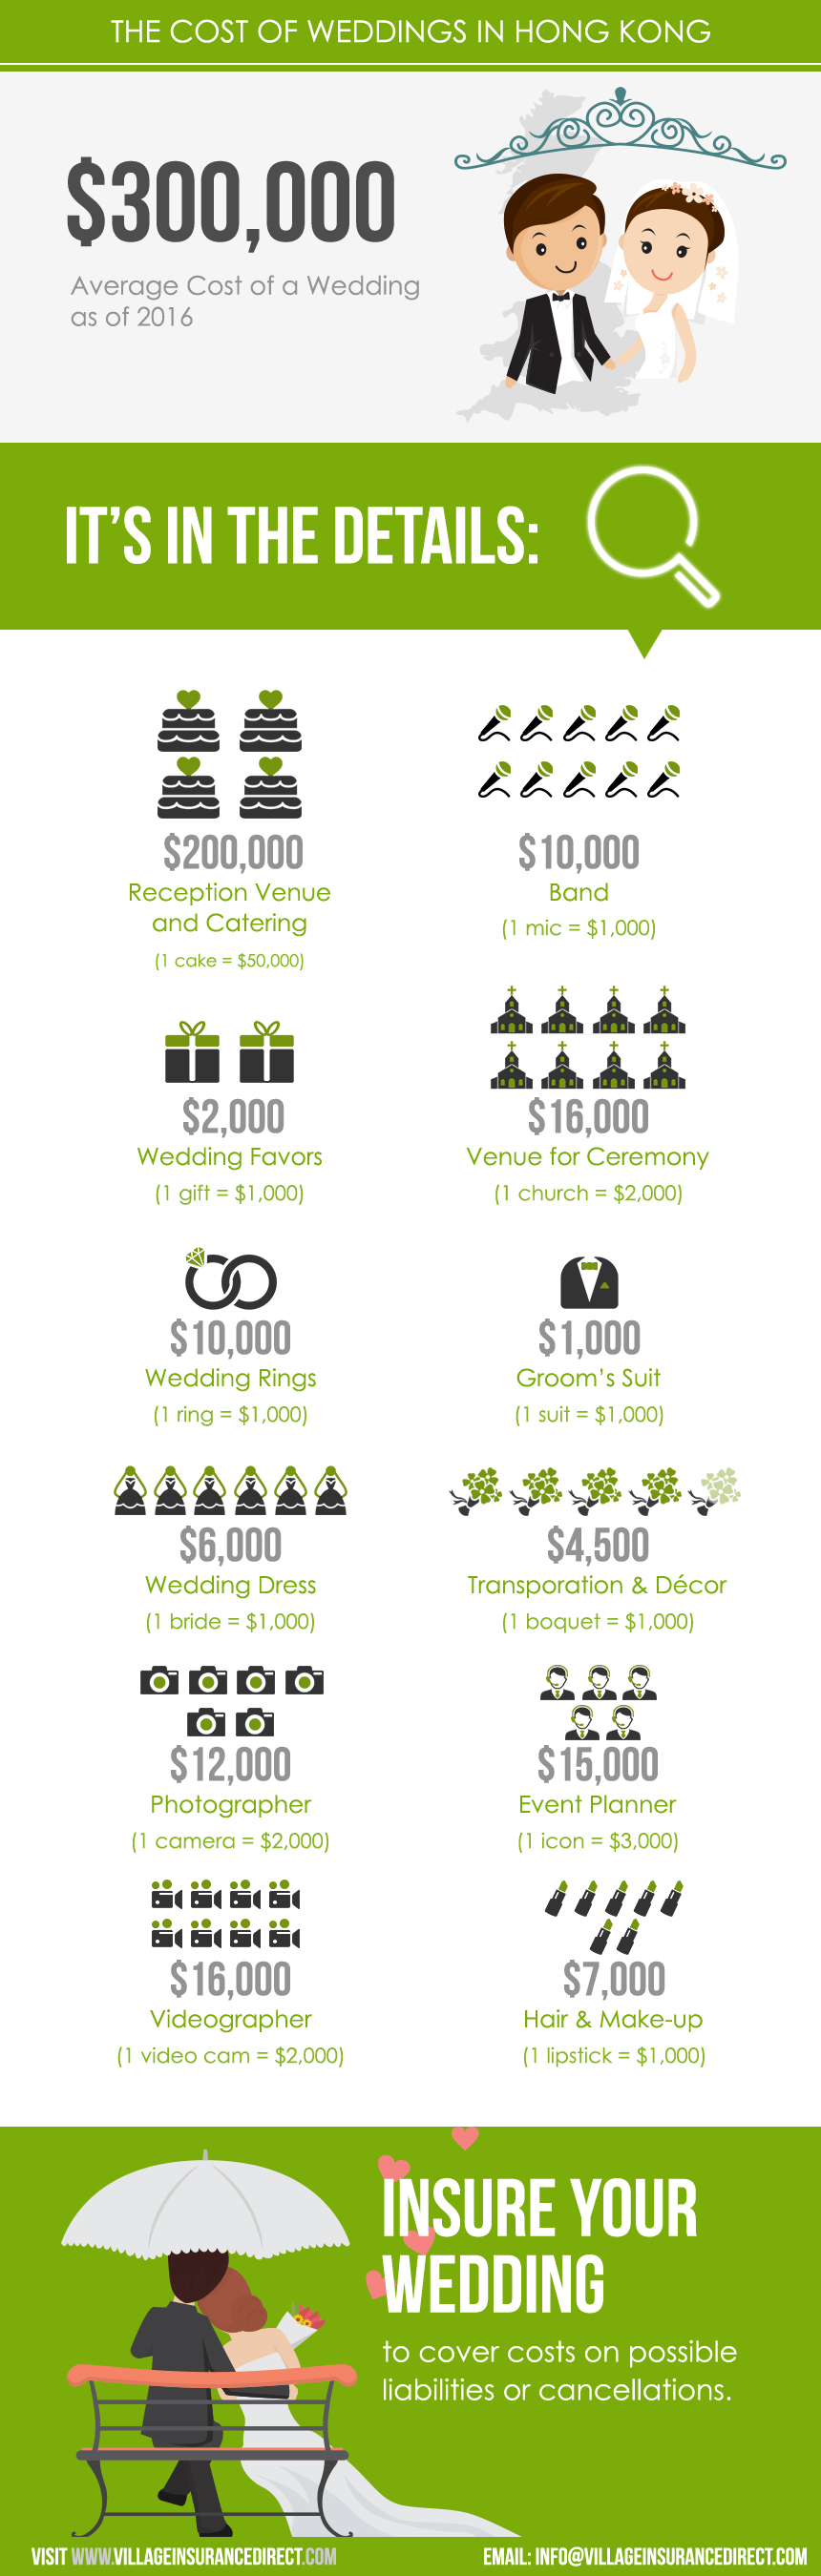 cost of weddings in hong kong 2017